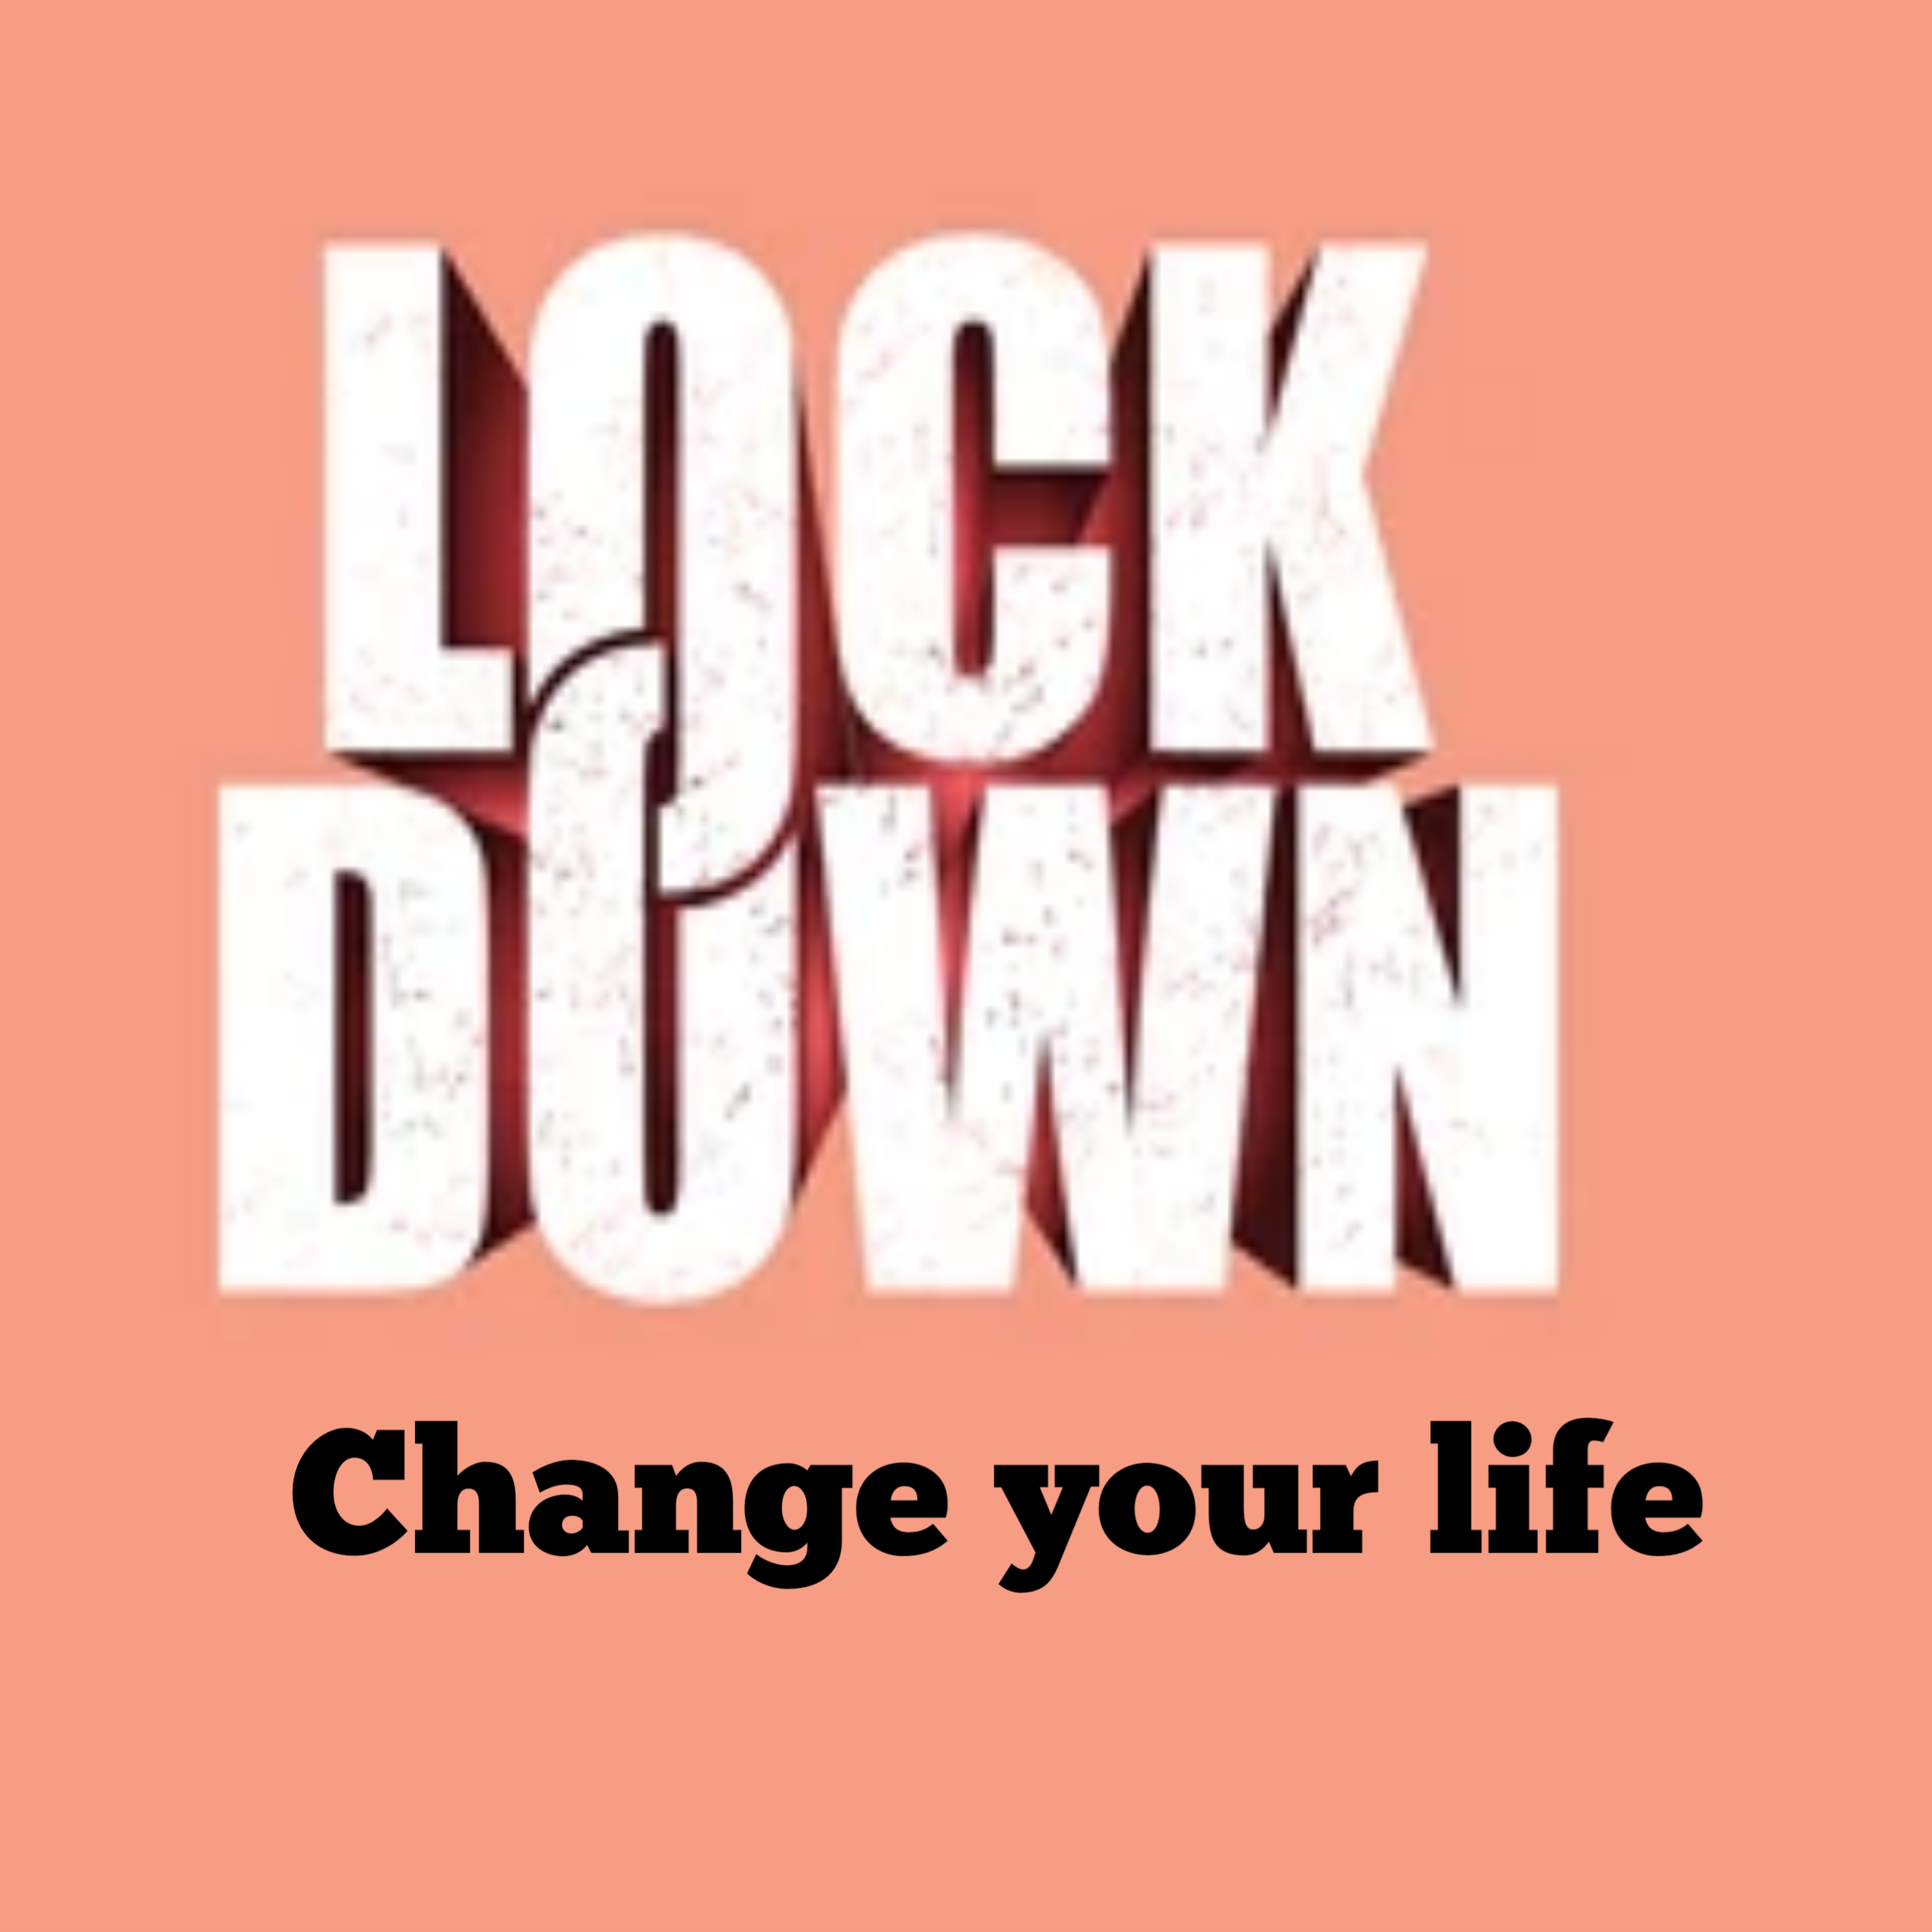 Can Lockdown change your life 2021